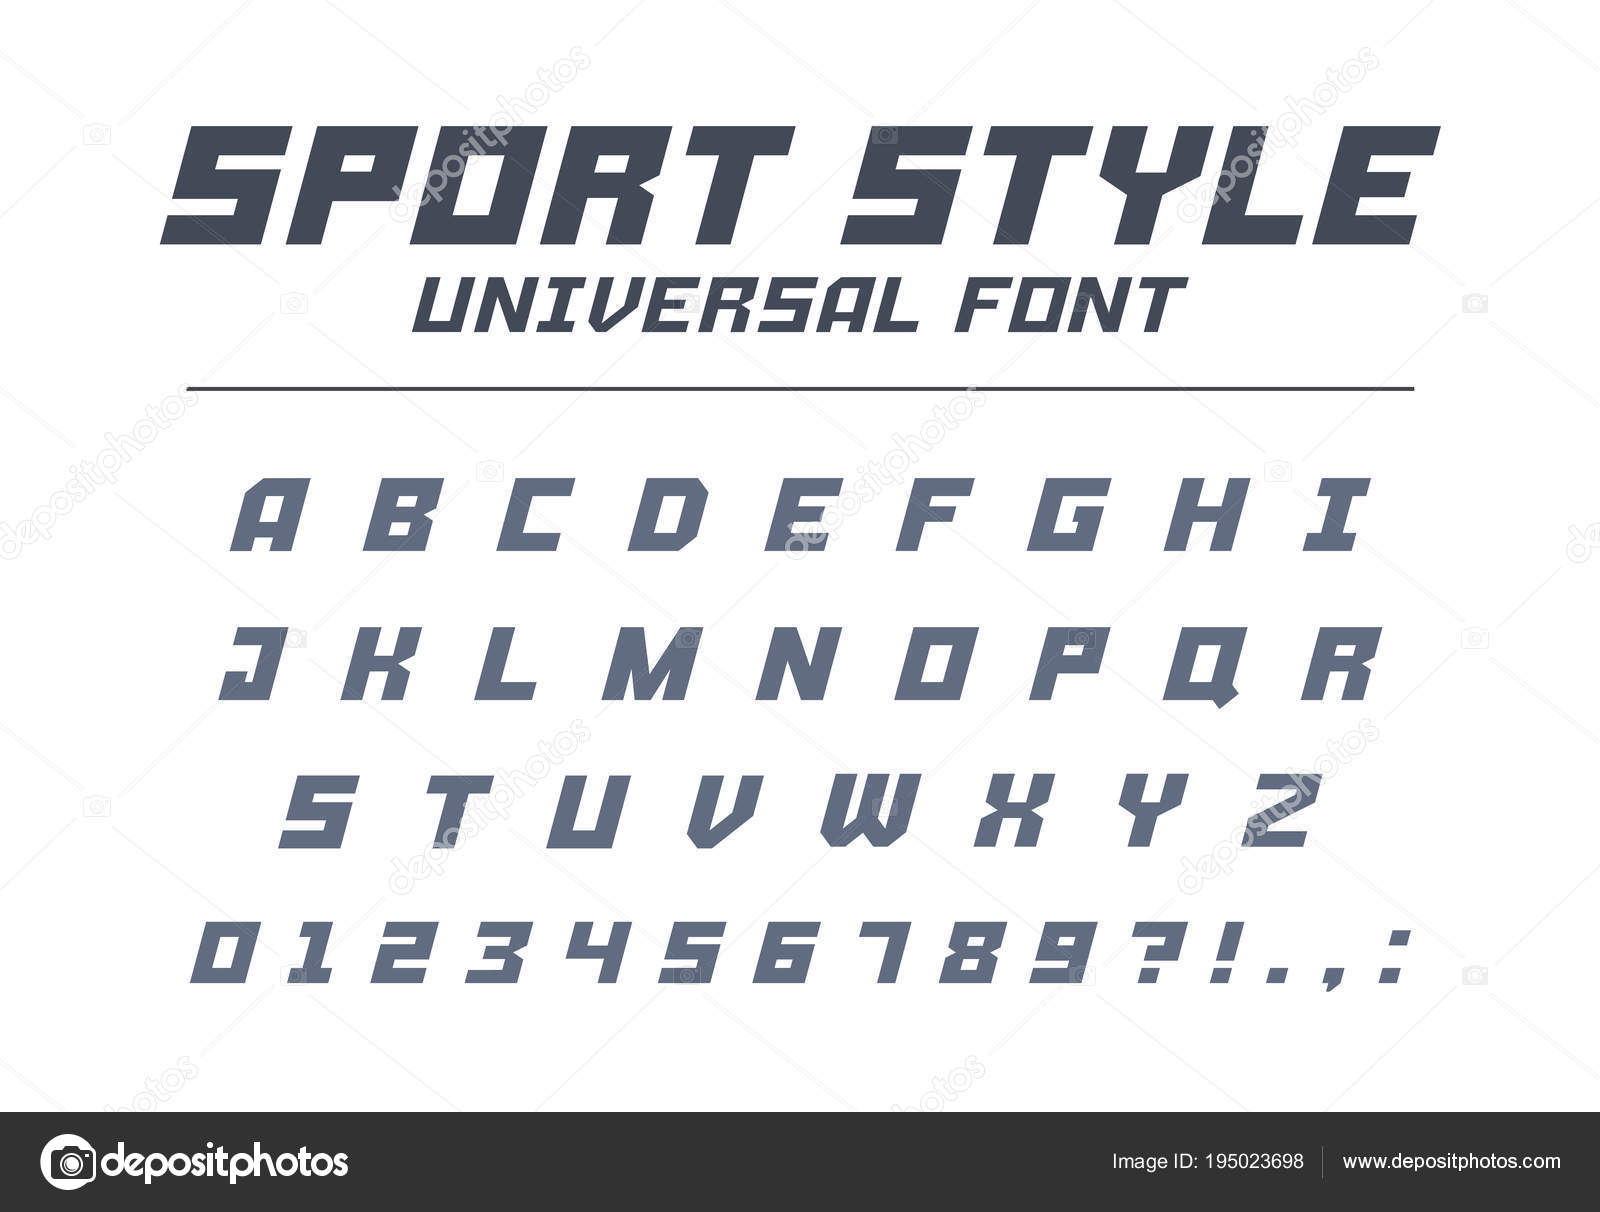 Sport Style Universal Font Type Fast Speed Futuristic Technology Future Alphabet Letters And Numbers For Military Industrial Electric Car Racing Logo